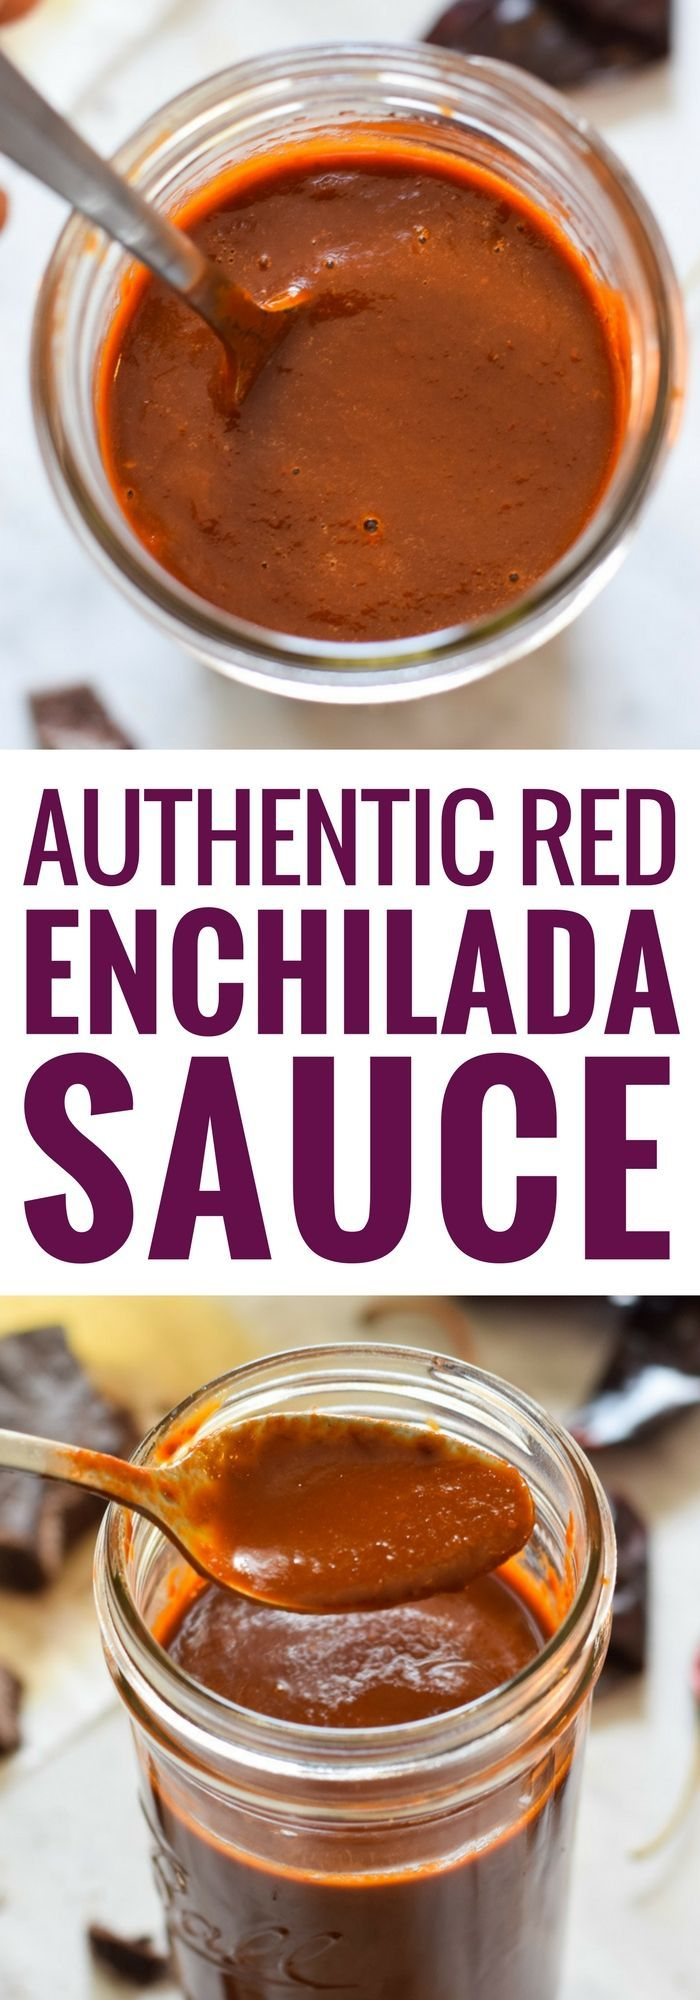 Authentic Red Enchilada Sauce Recipe Mexican Food Recipes Authentic Mexican Food Recipes Food